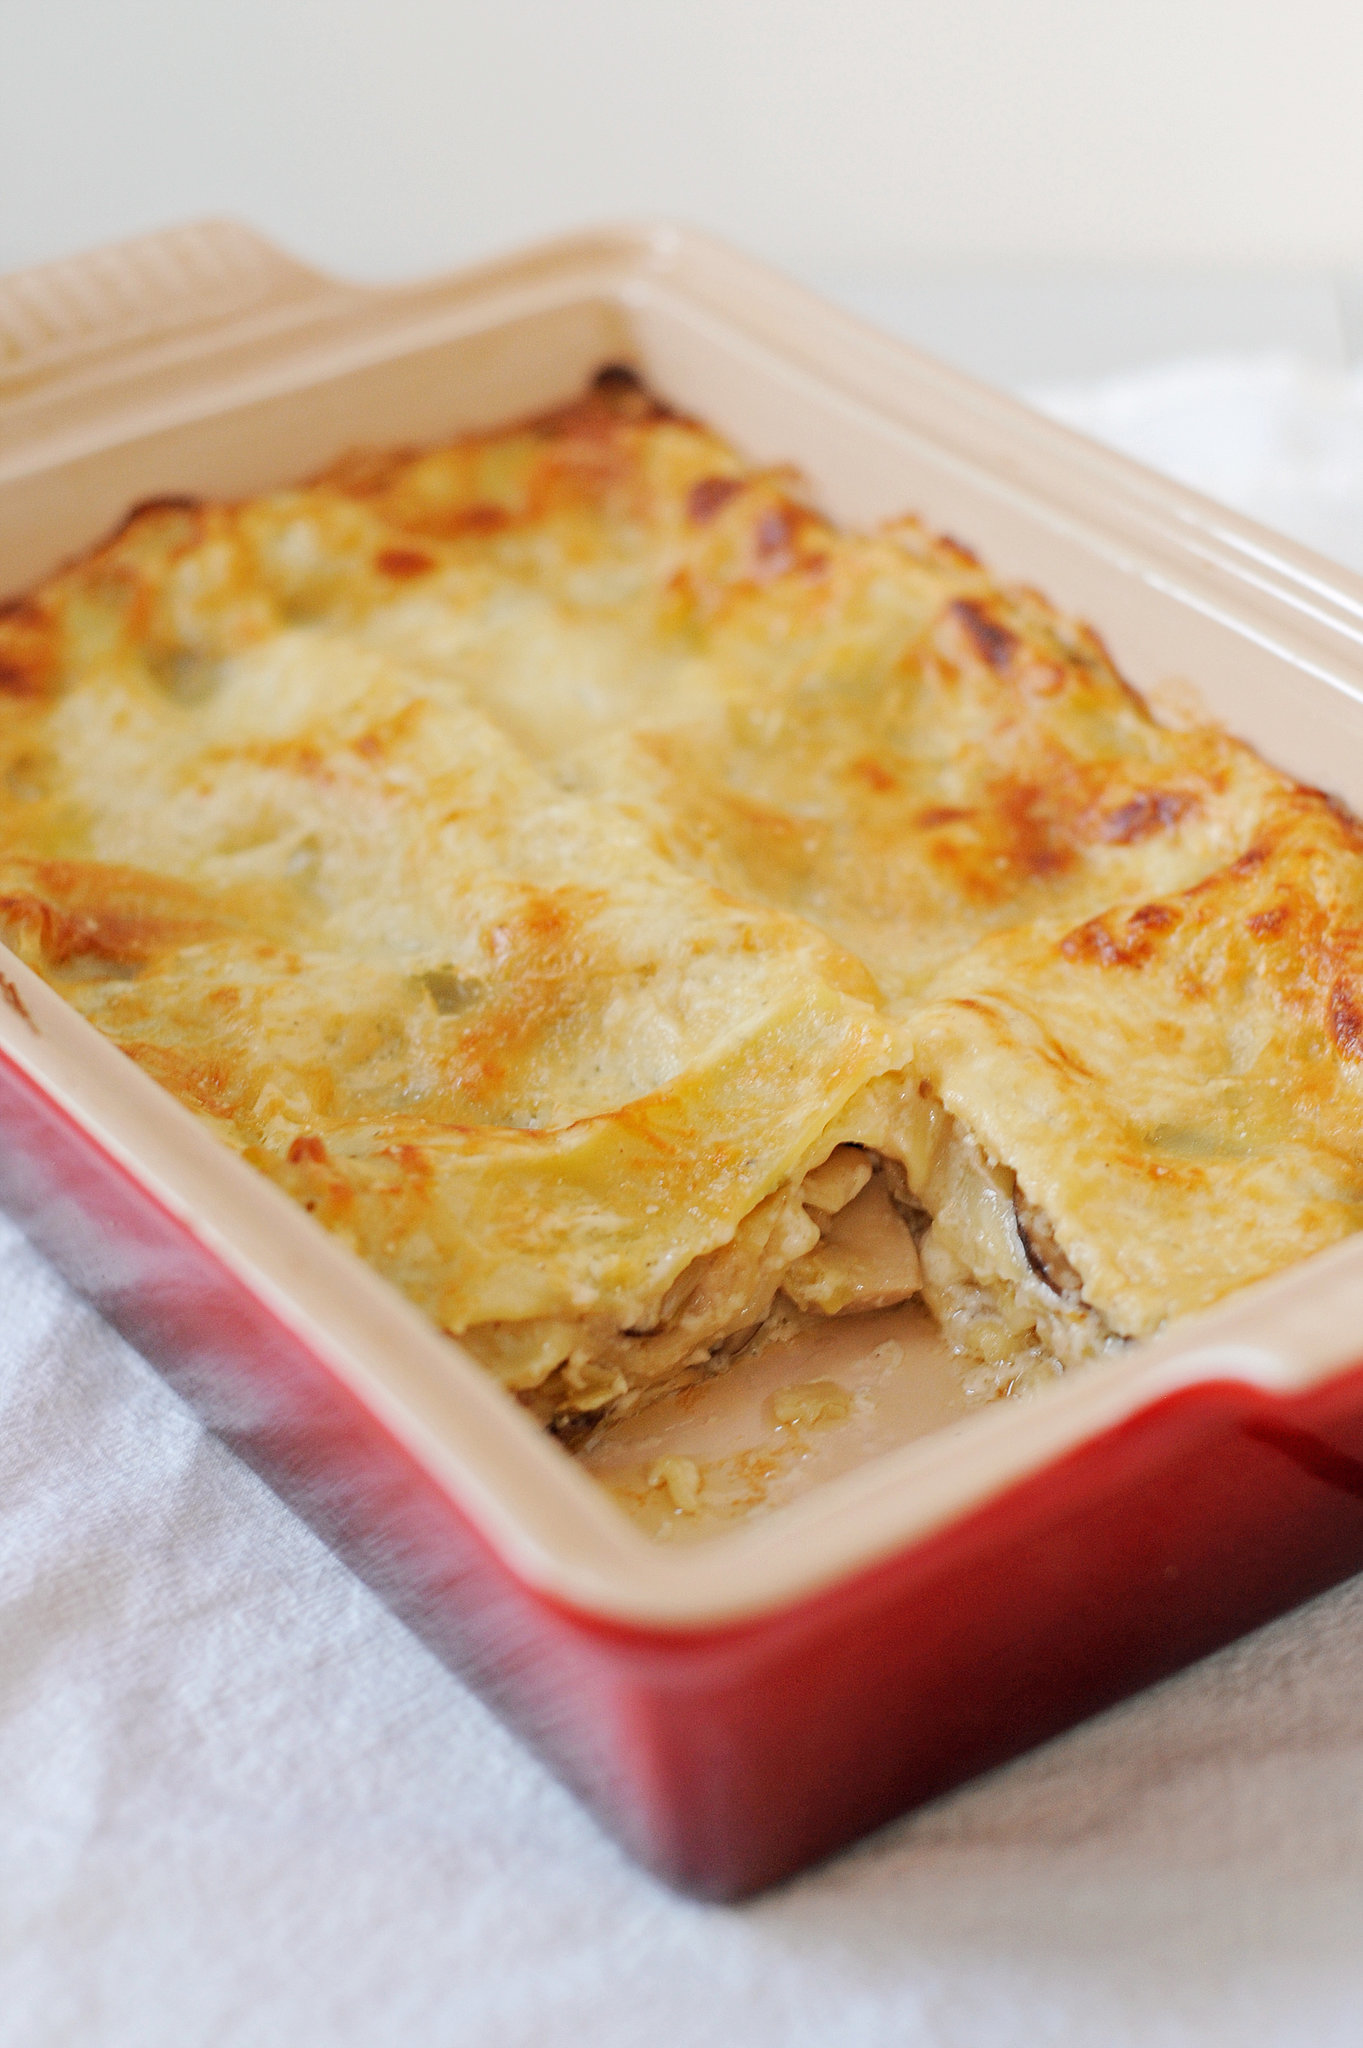 Hunker Down With This Hearty Mushroom-Leek Lasagna From Ina Garten